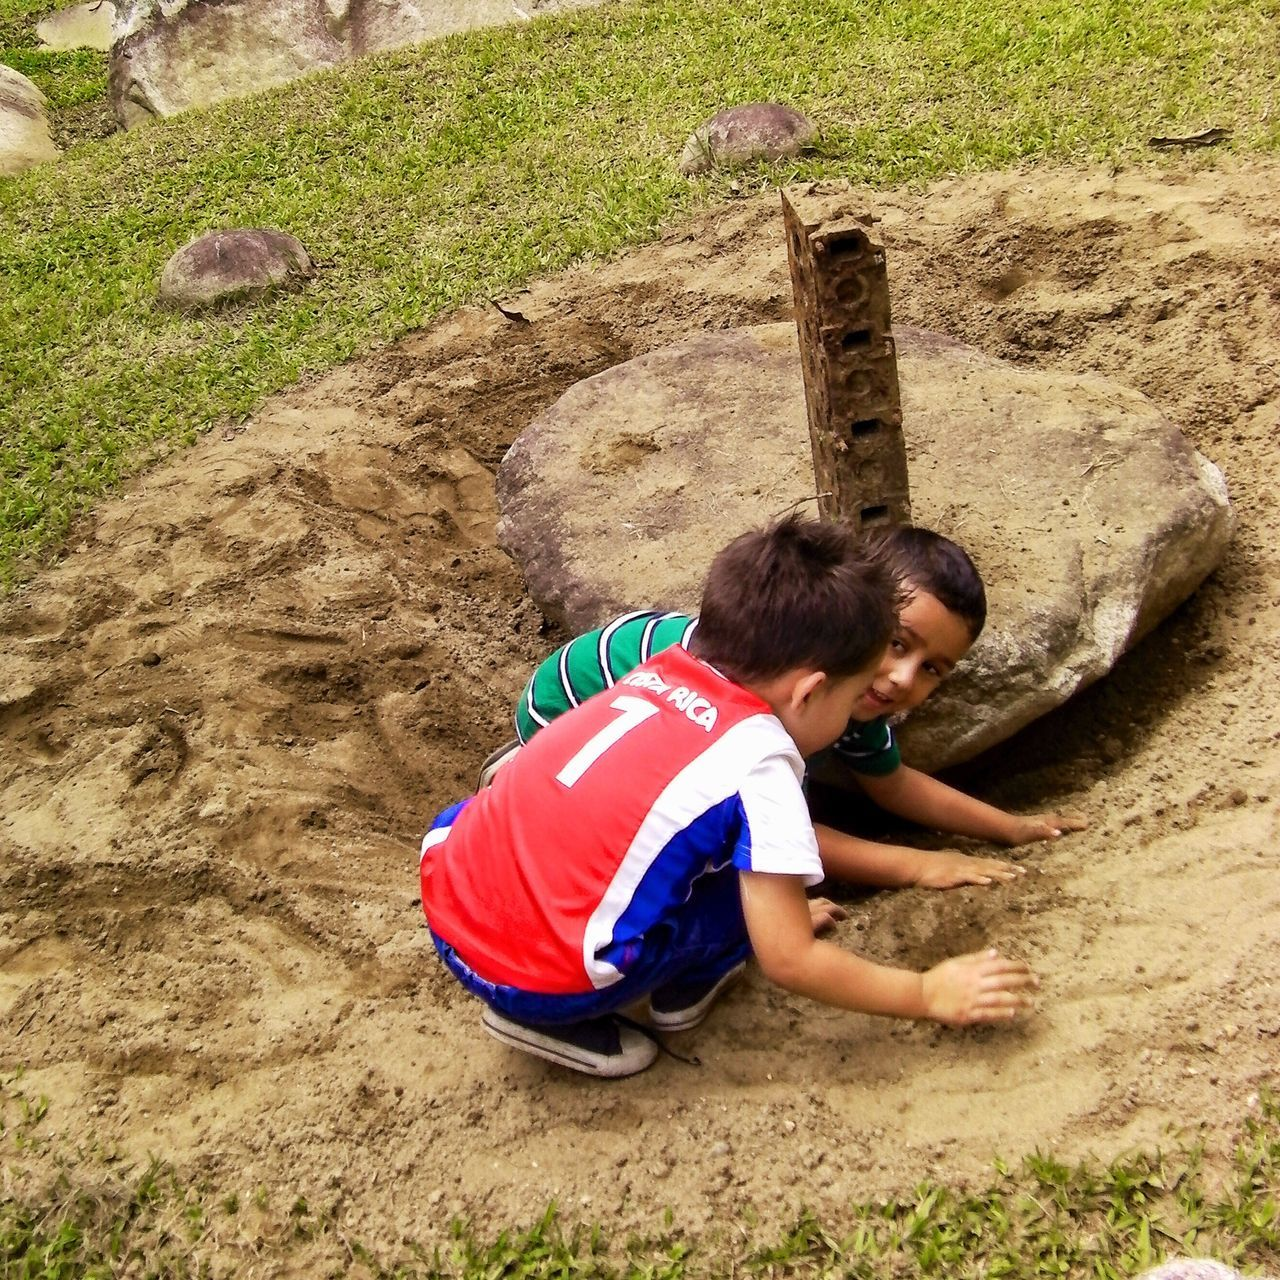 real people, leisure activity, childhood, full length, high angle view, boys, sand, day, outdoors, lifestyles, sitting, elementary age, field, grass, nature, animal themes, mammal, people